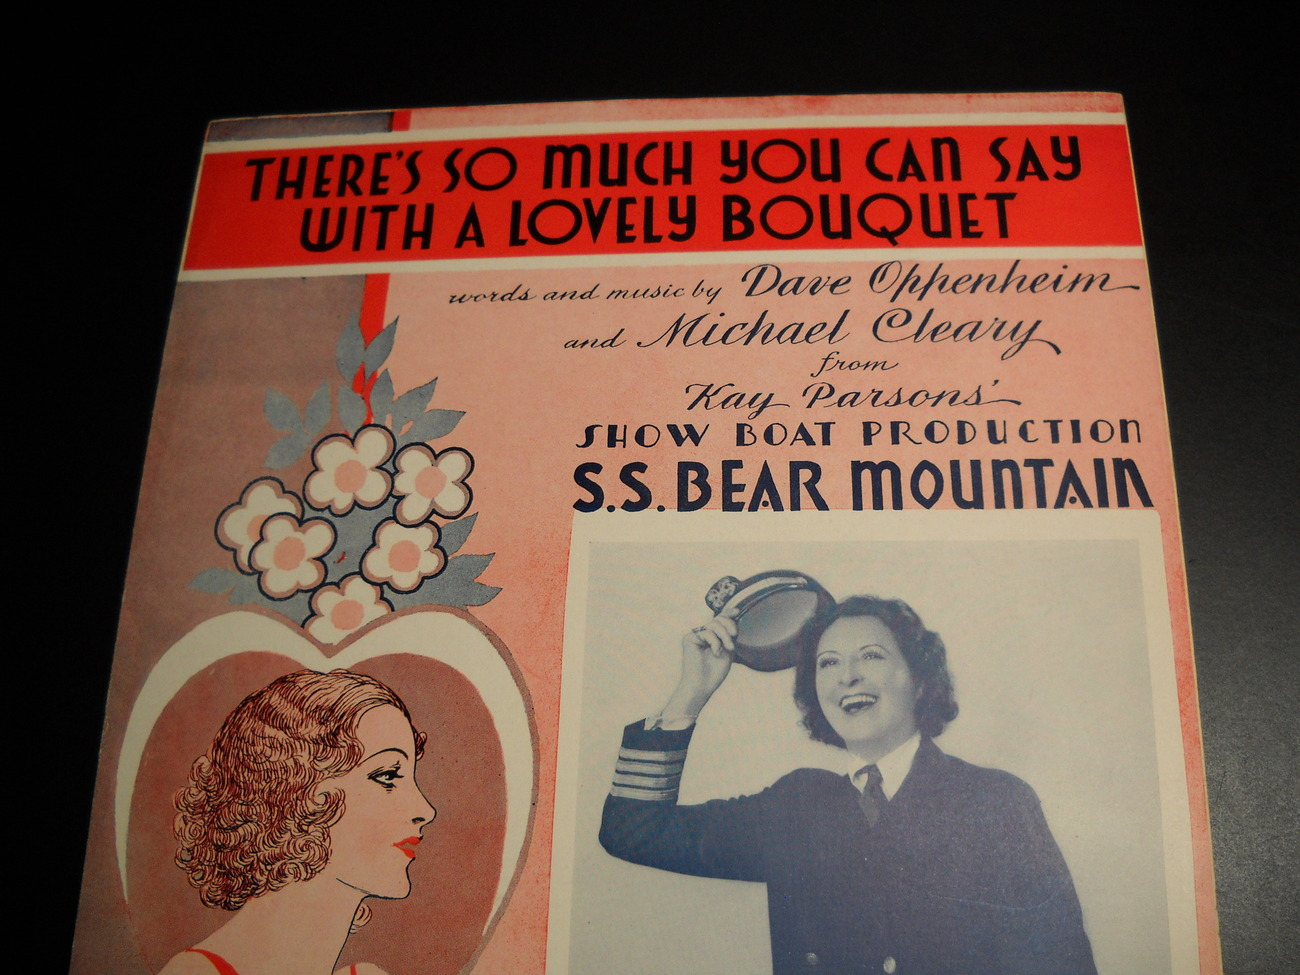 Sheet_music_there_s_so_much_to_say_with_a_lovely_bouquet_ss_bear_mountain_kay_parsons_1936_mills_music_02